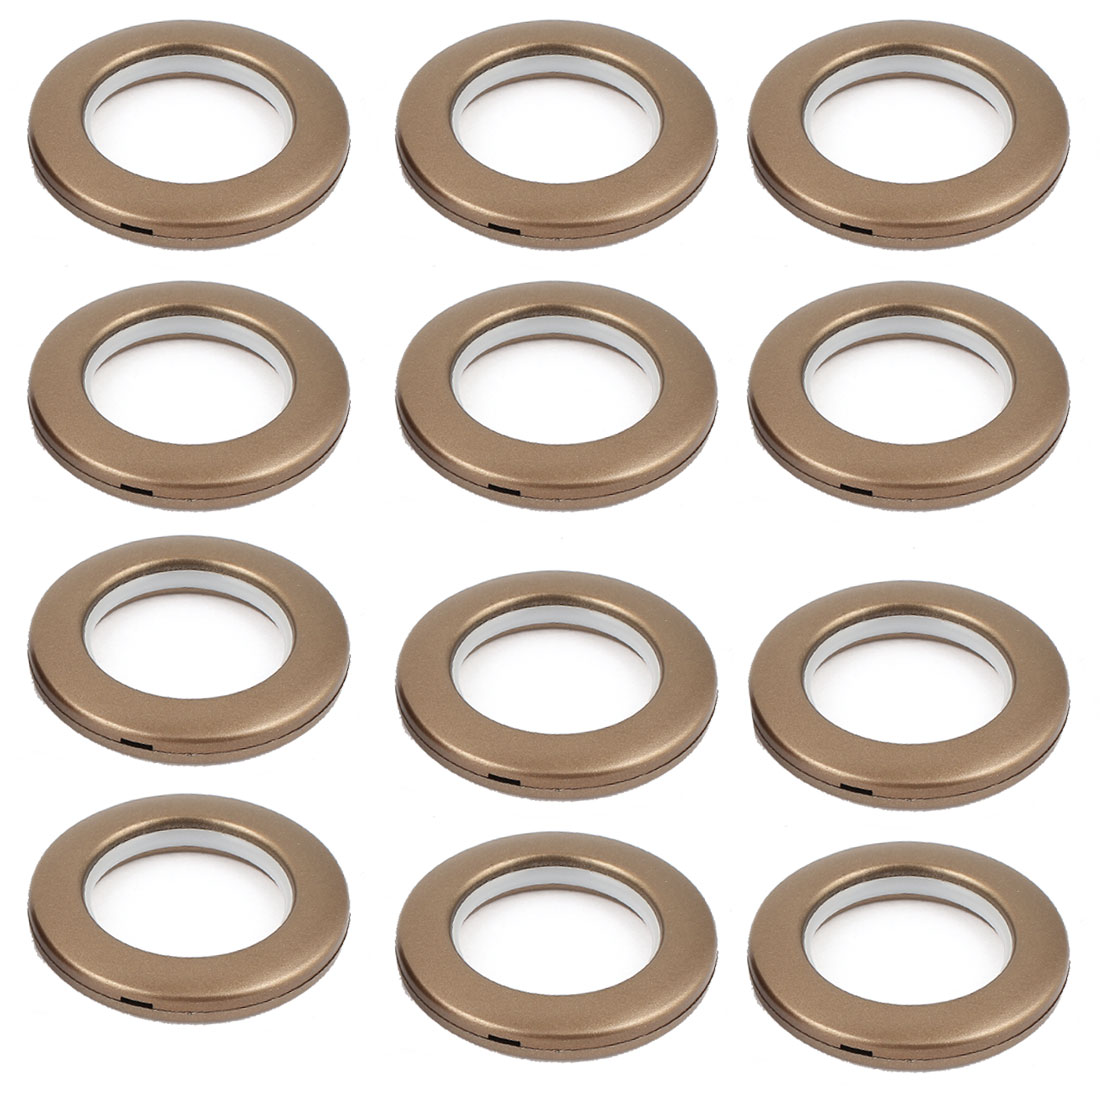 12 Pcs 41mm Inner Diameter Coffee Color Plastic Window Curtain Rings